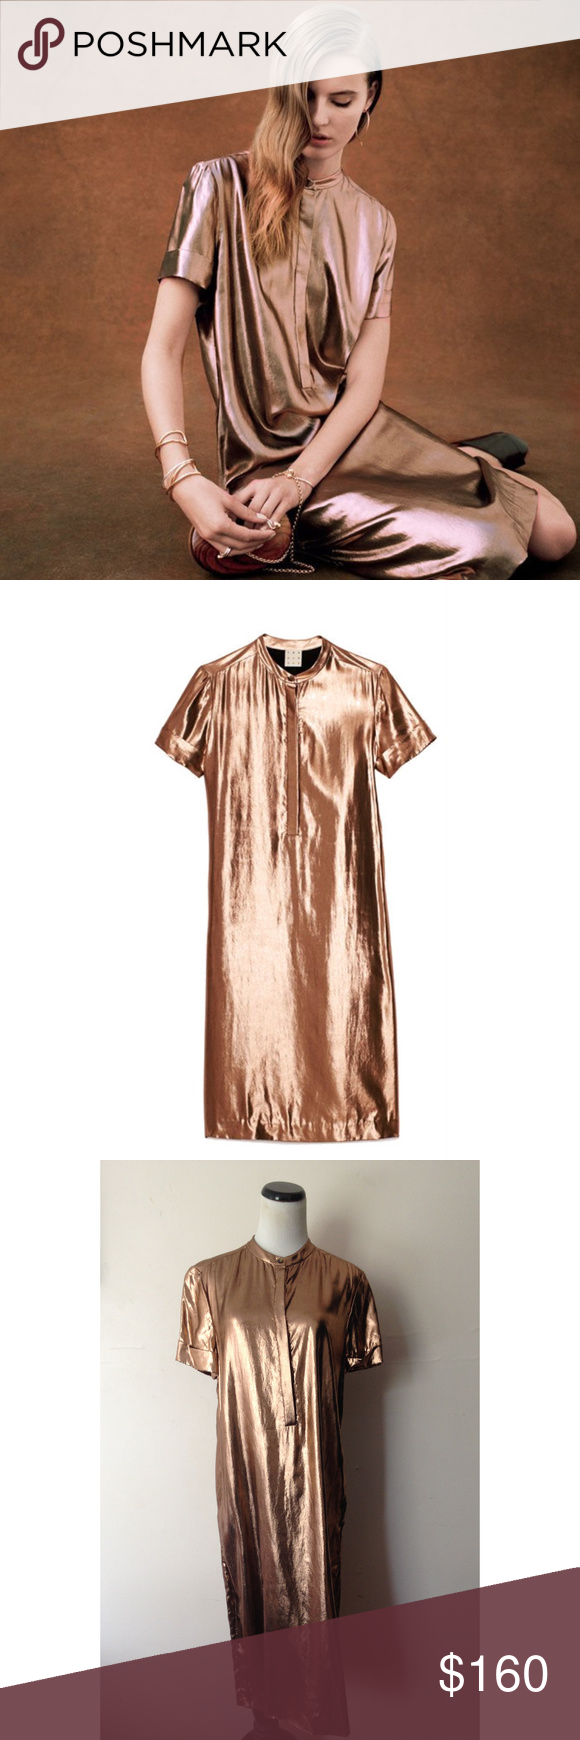 2527bef1030 Trademark minimal pinkish bronze lamé shirtdress This dress is from  Trademark